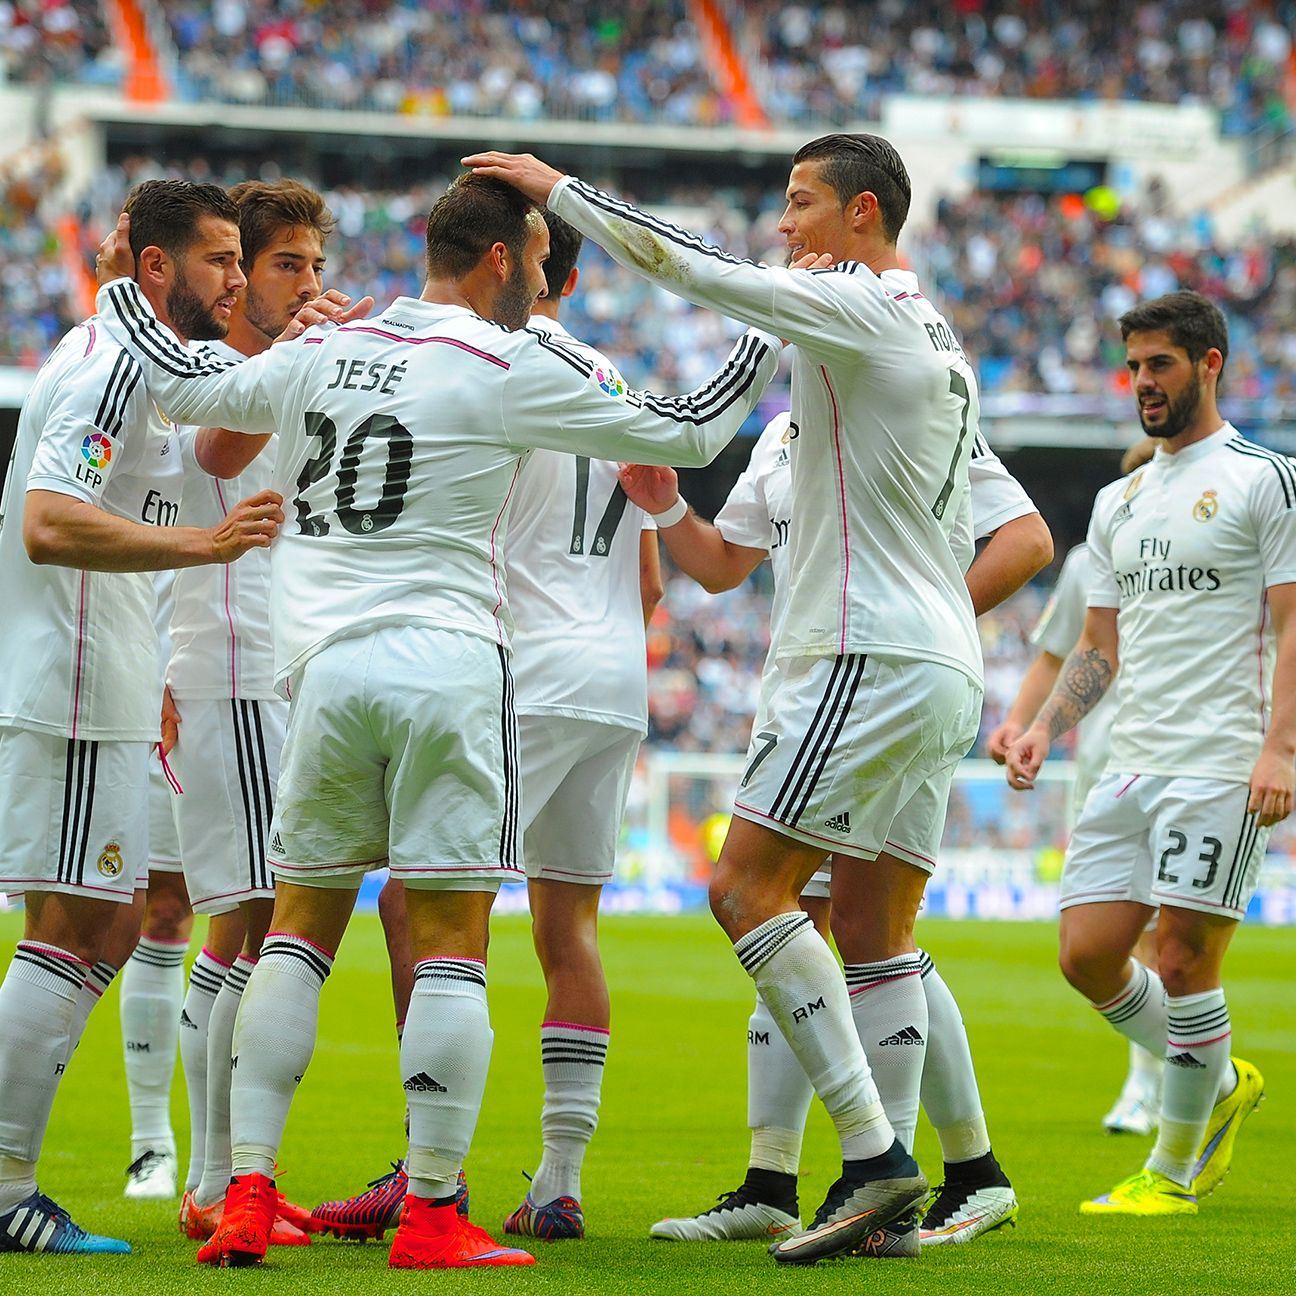 Real Madrid were hardly troubled against Eibar in collecting their third straight league win.